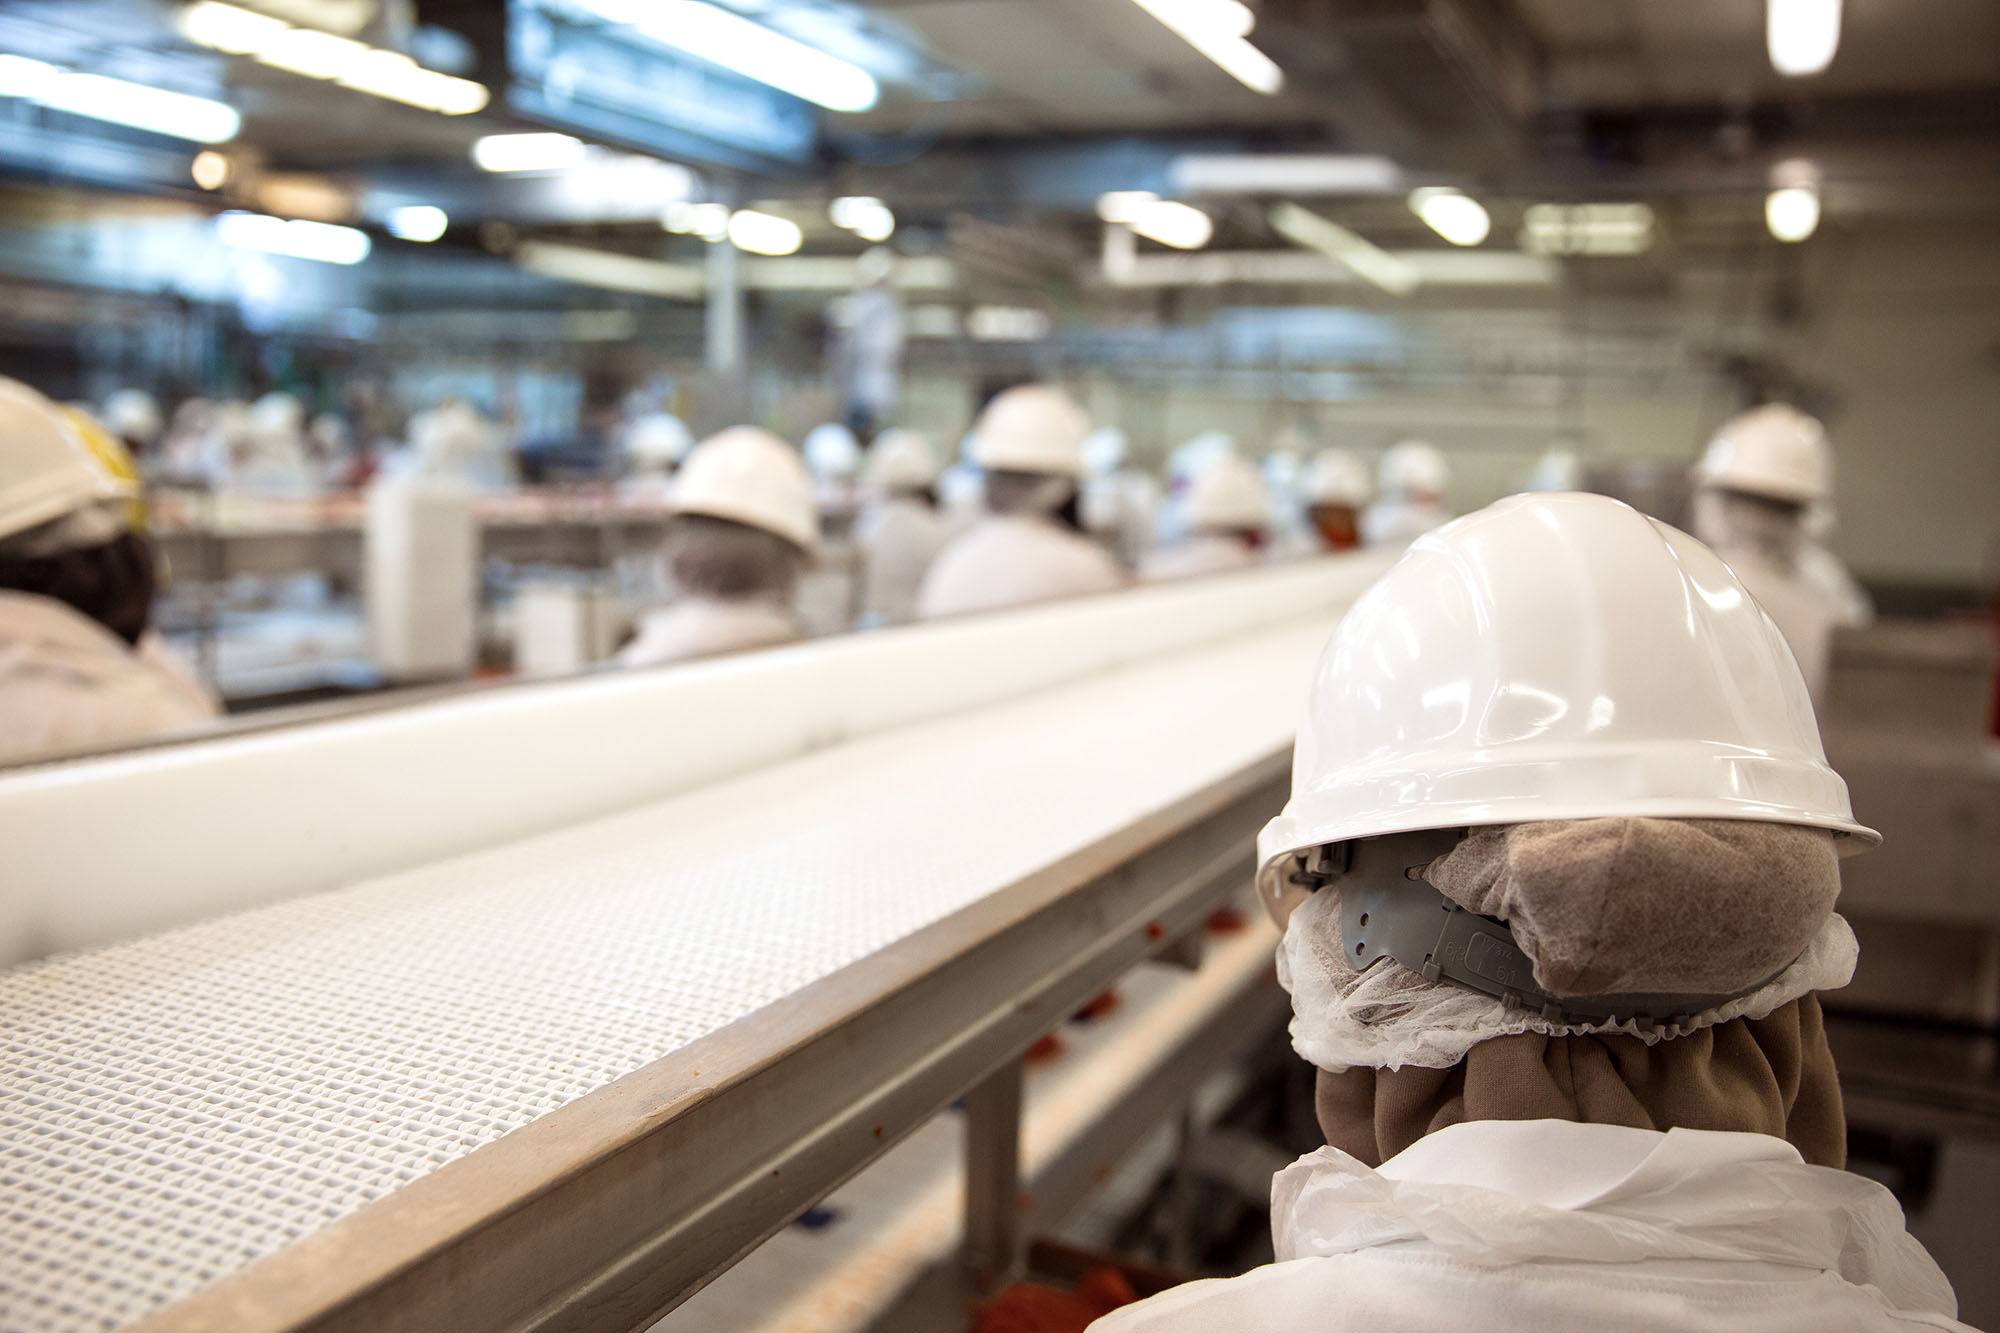 Food processing factory workers, manufacturing industry